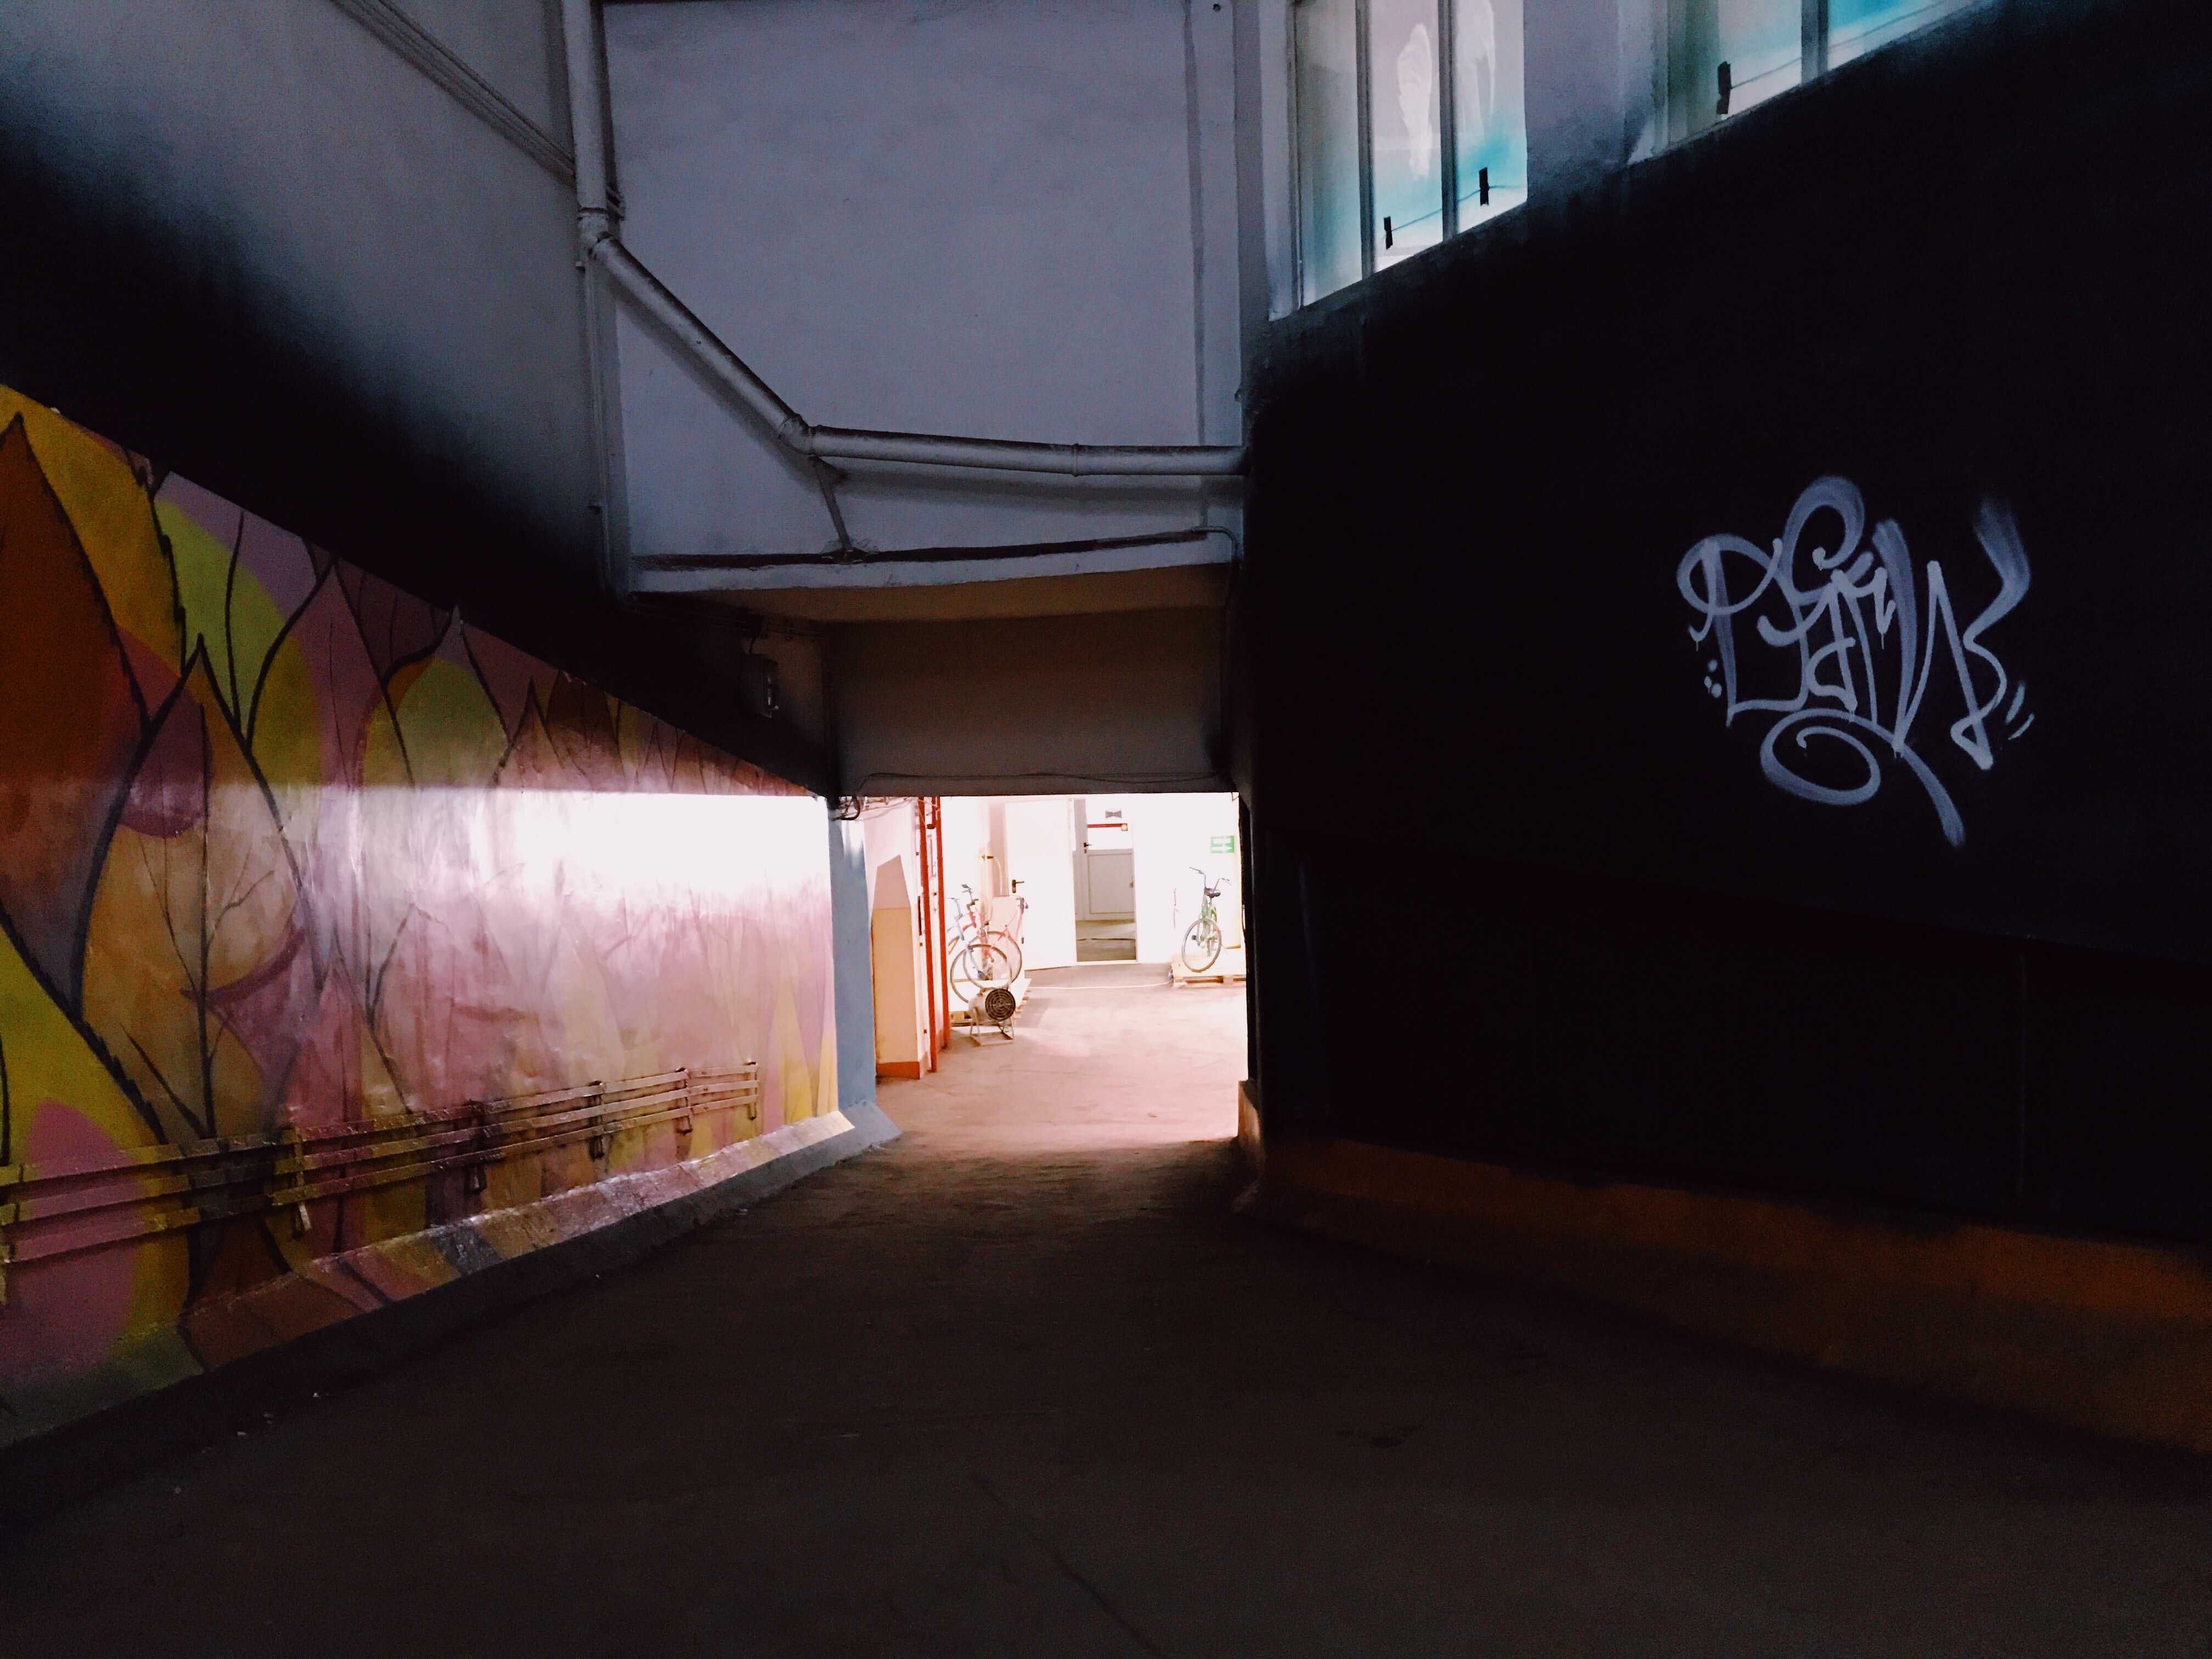 building with graffiti